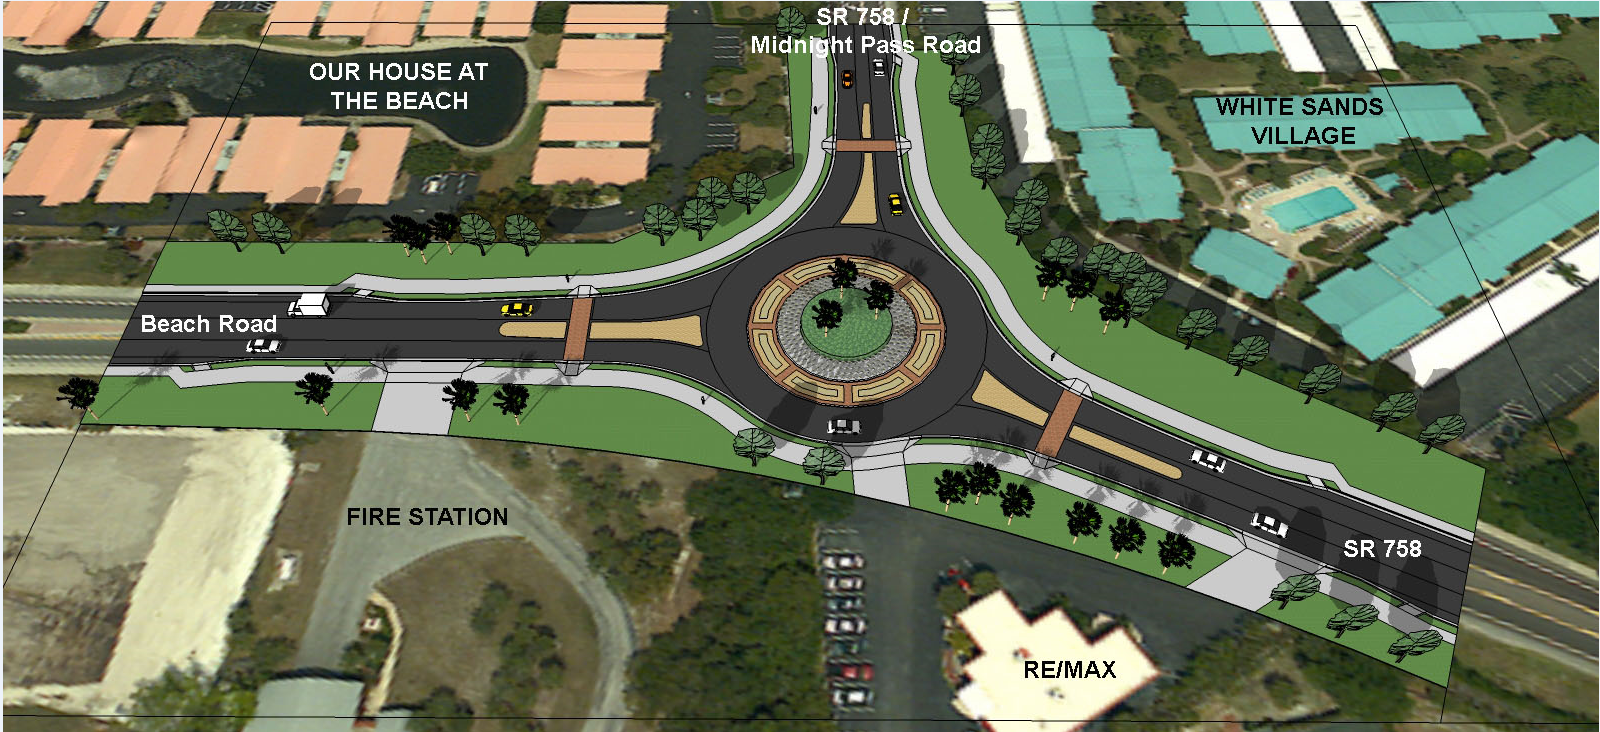 Is a Roundabout REALLY Needed?